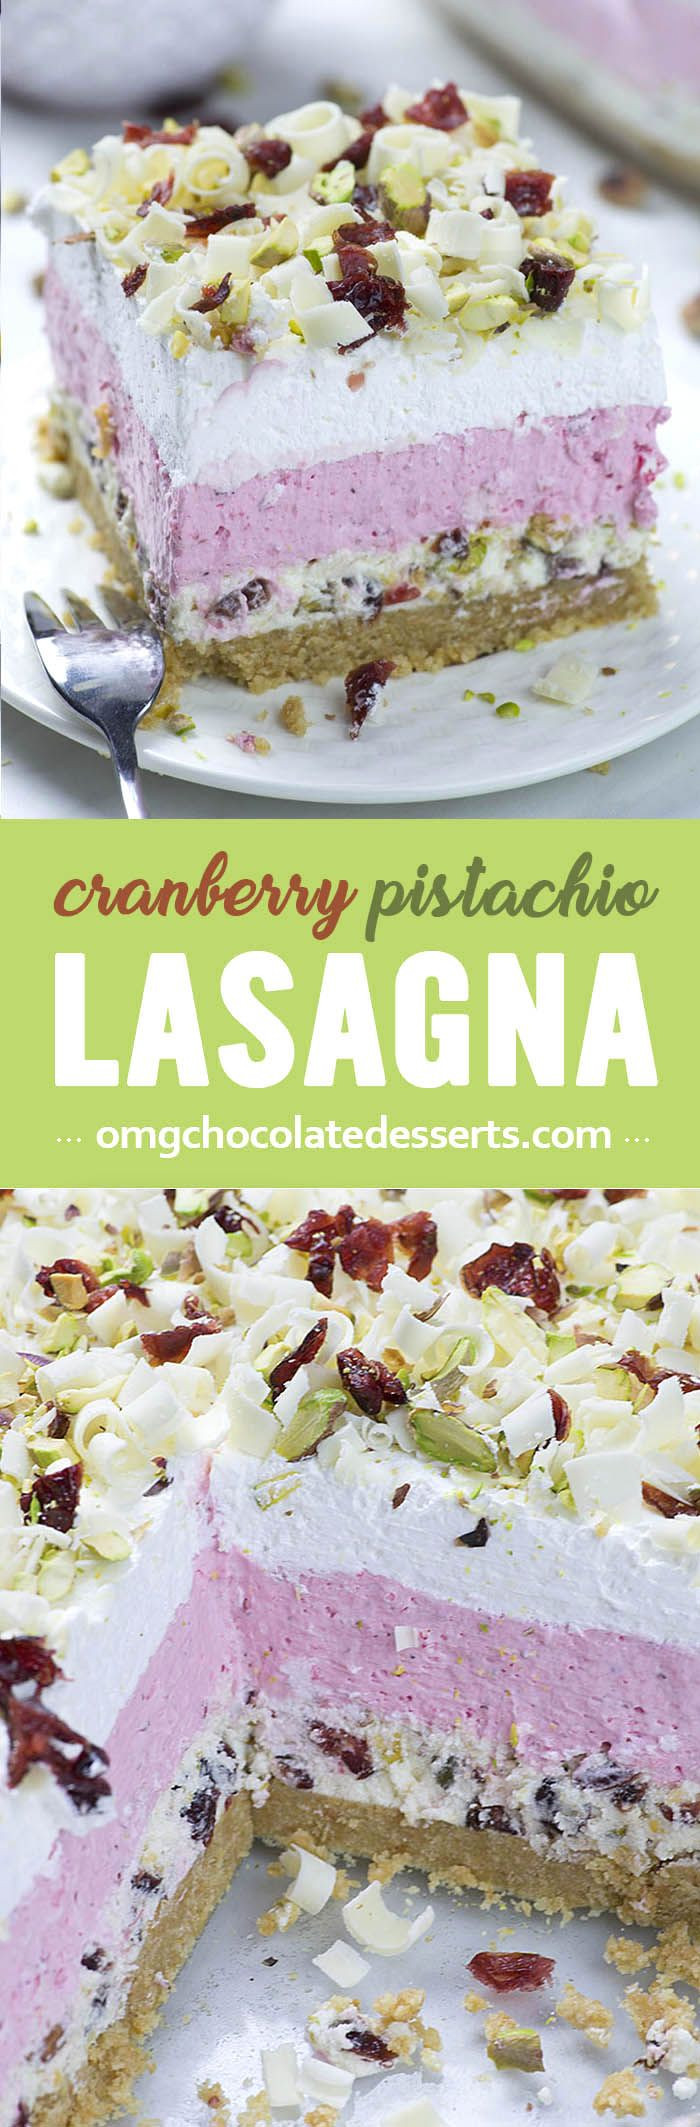 Easy Christmas Desserts Pinterest  Cranberry Pistachio Lasagna is easy NO BAKE dessert for